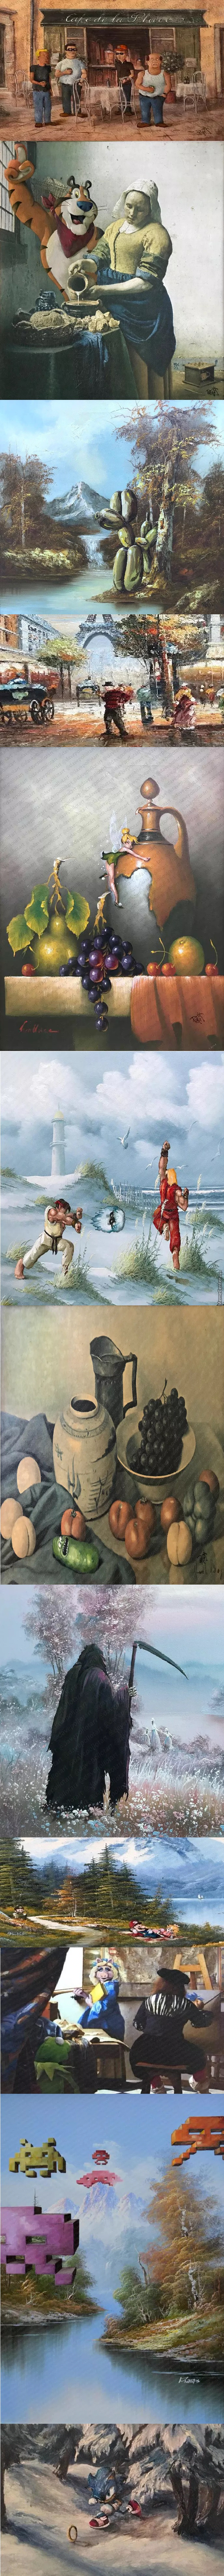 Altered Artwork 5 Thrift Store Paintings Re Imaged By Dave Pollot